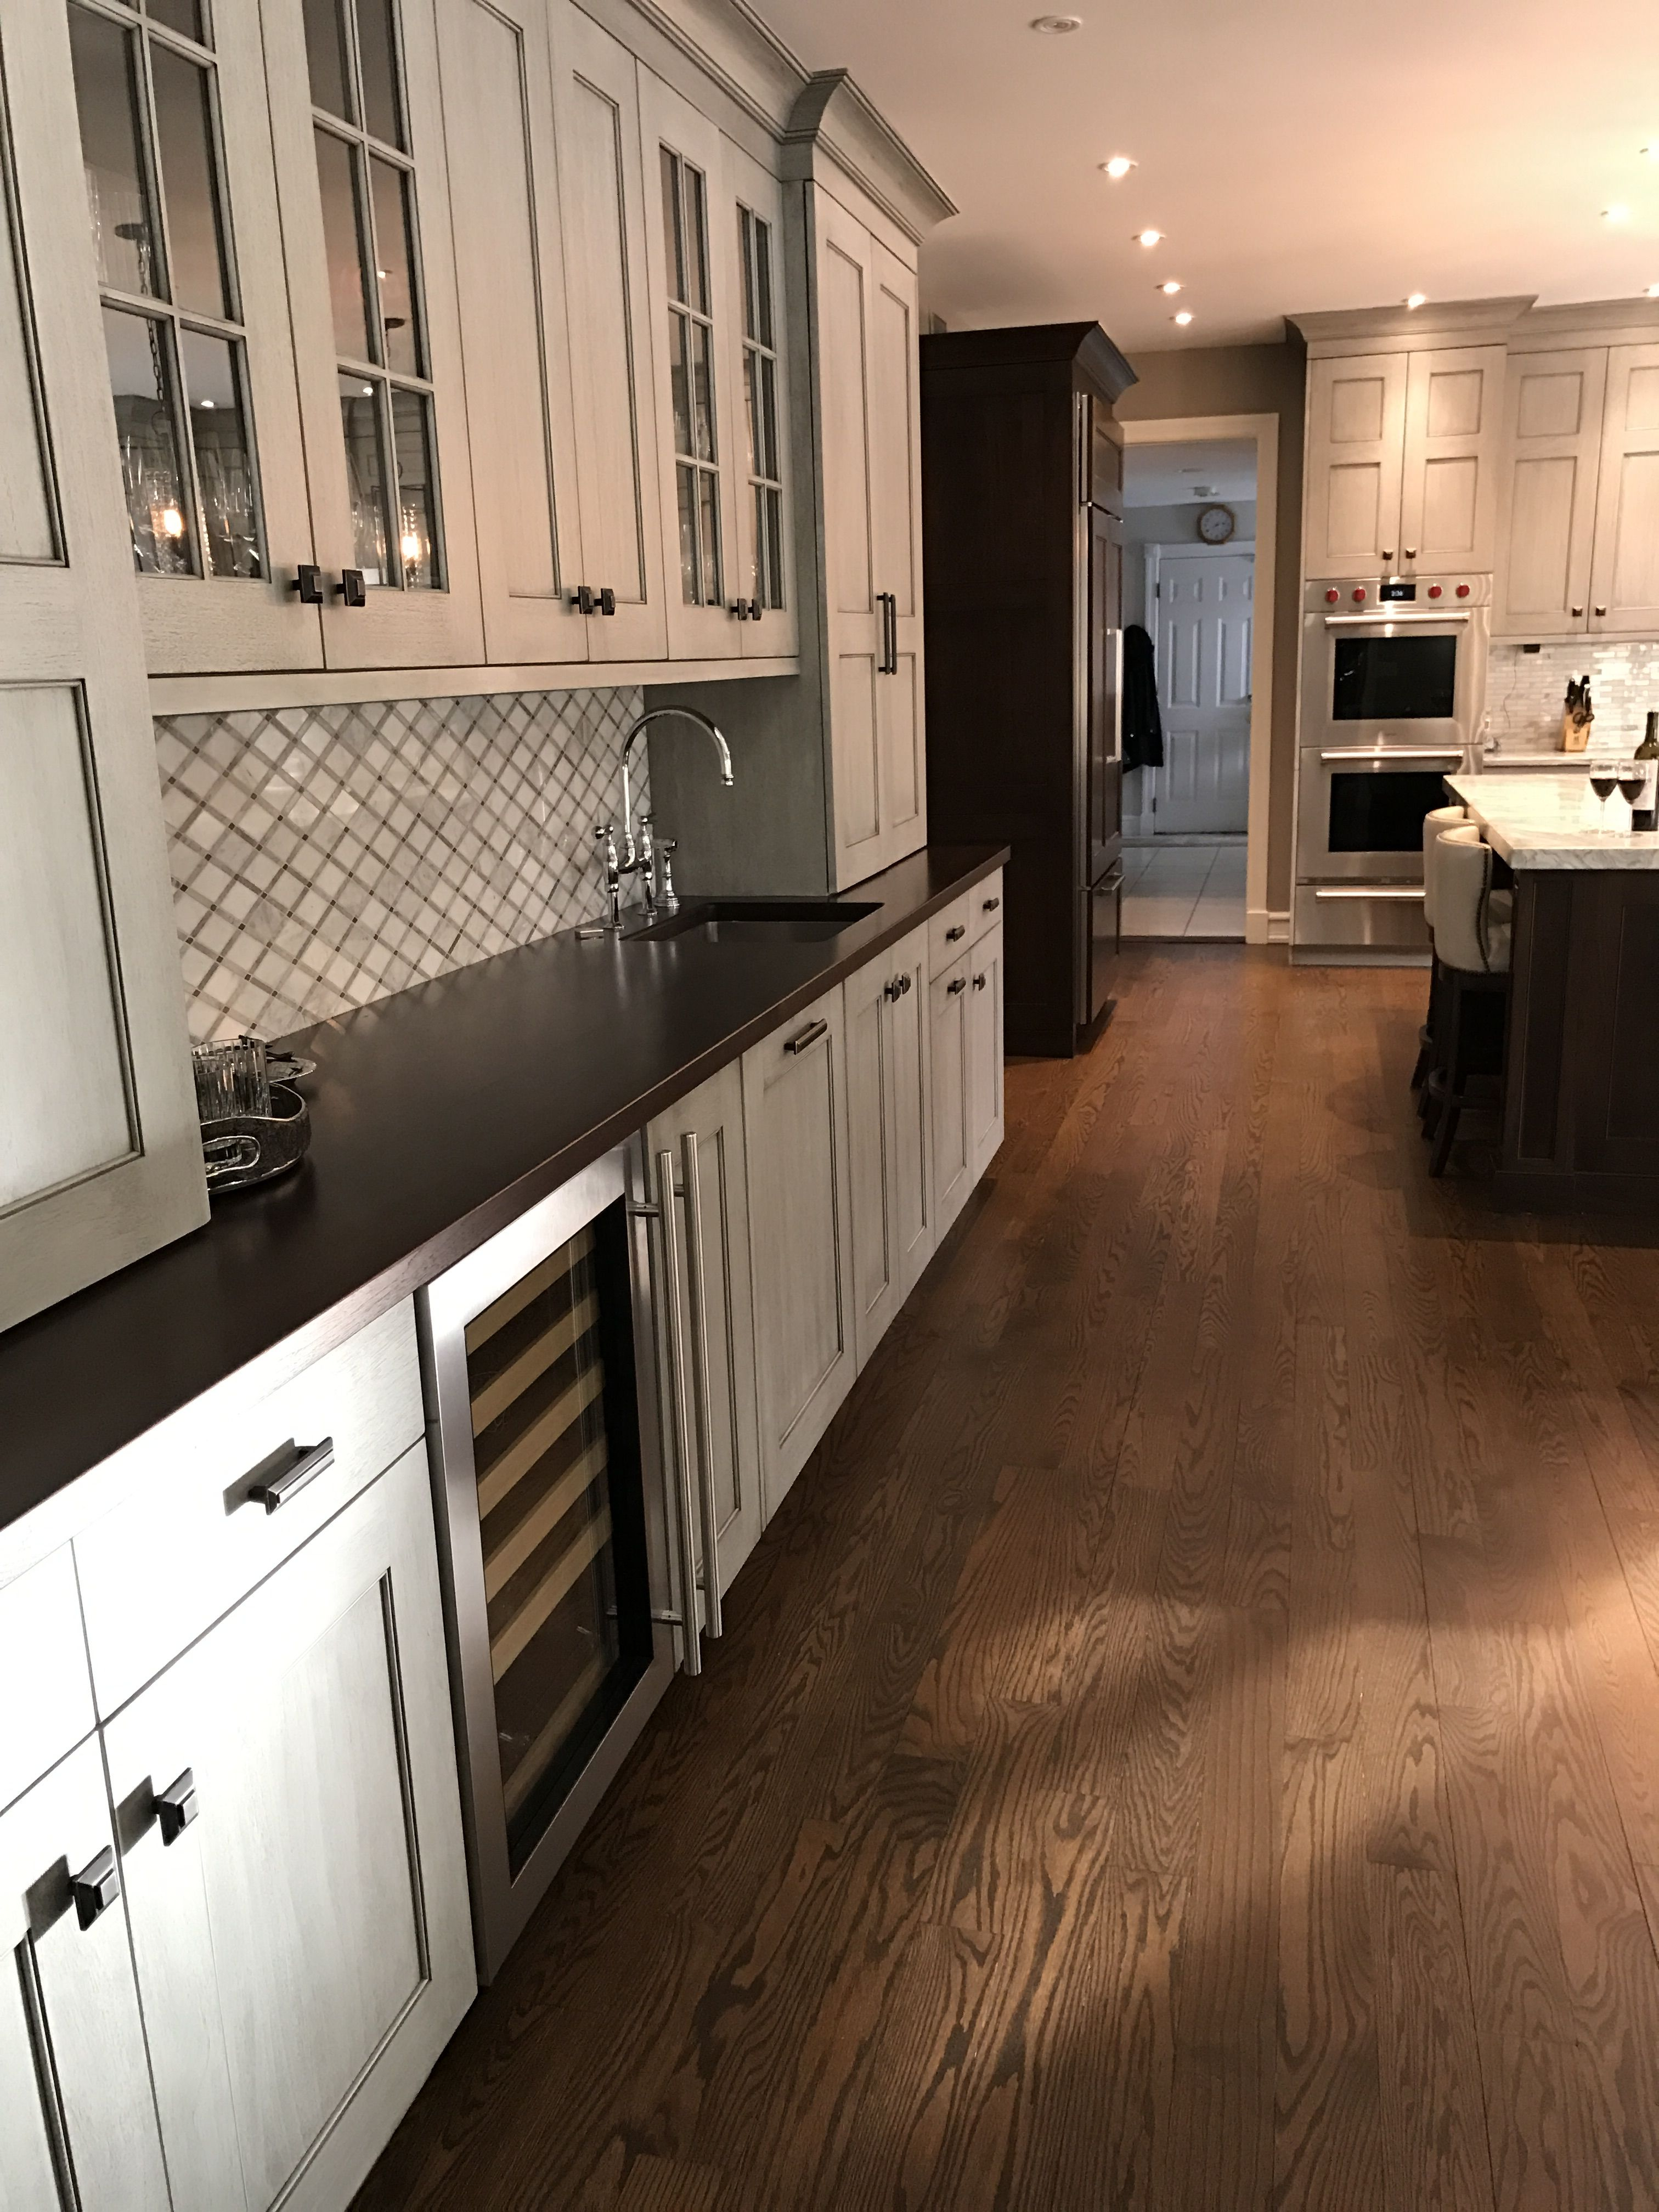 Simply Beautiful Ruttcabinetry Bar Area Off The Kitchen